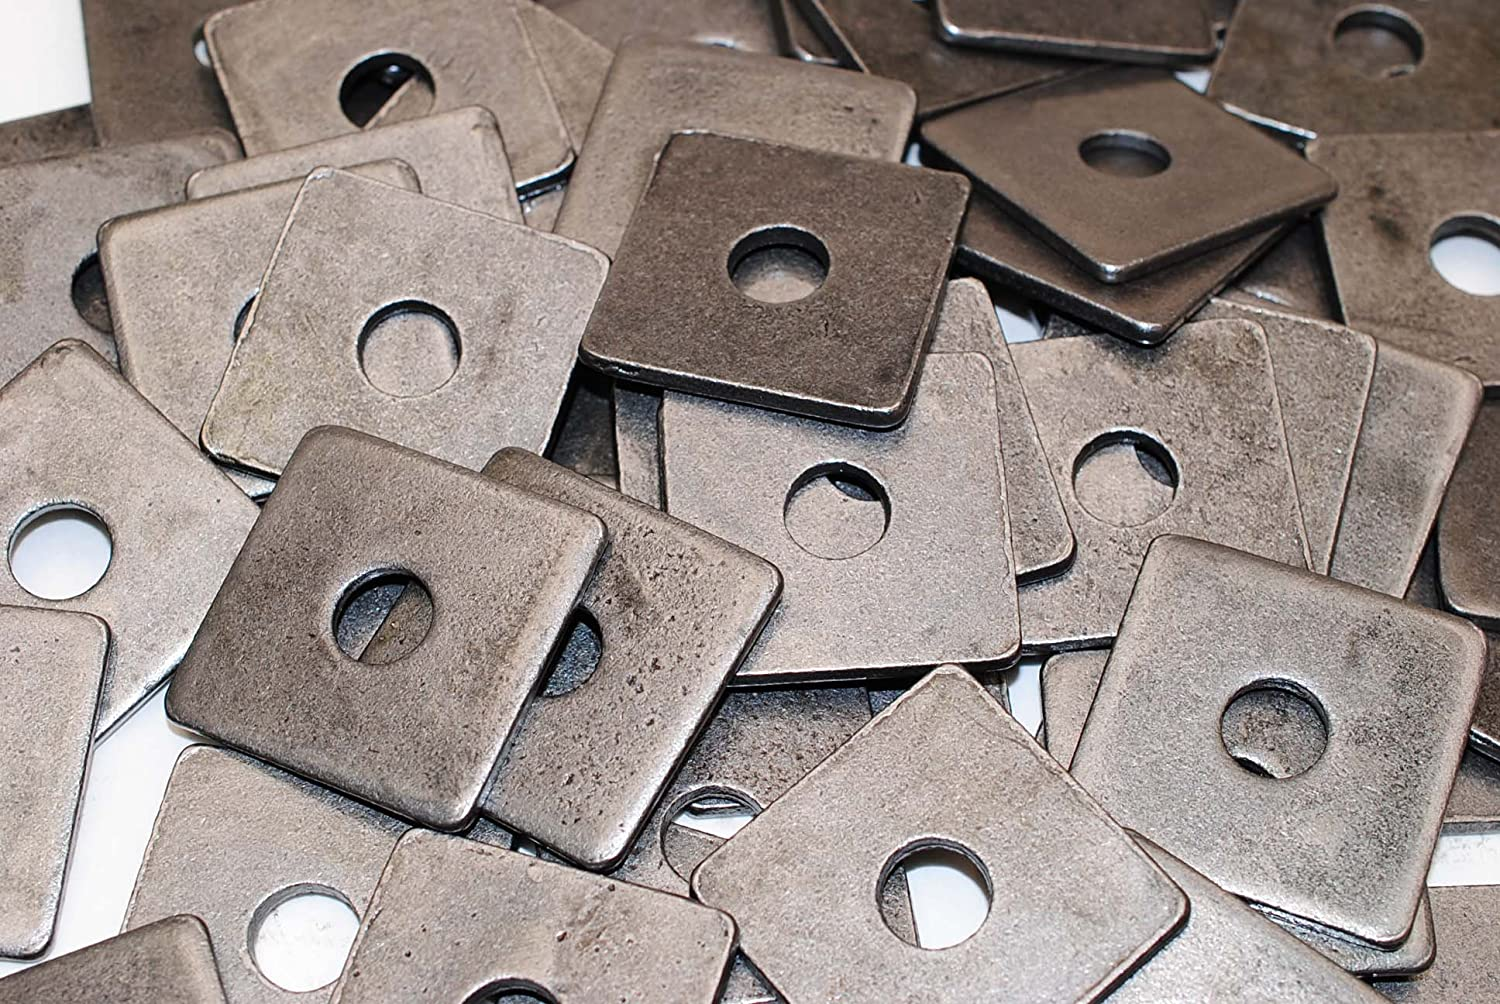 2021 new 40 Plain Brand Cheap Sale Venue Steel 1 2 x Square Thick 3 Washers 16 Plate Unplate